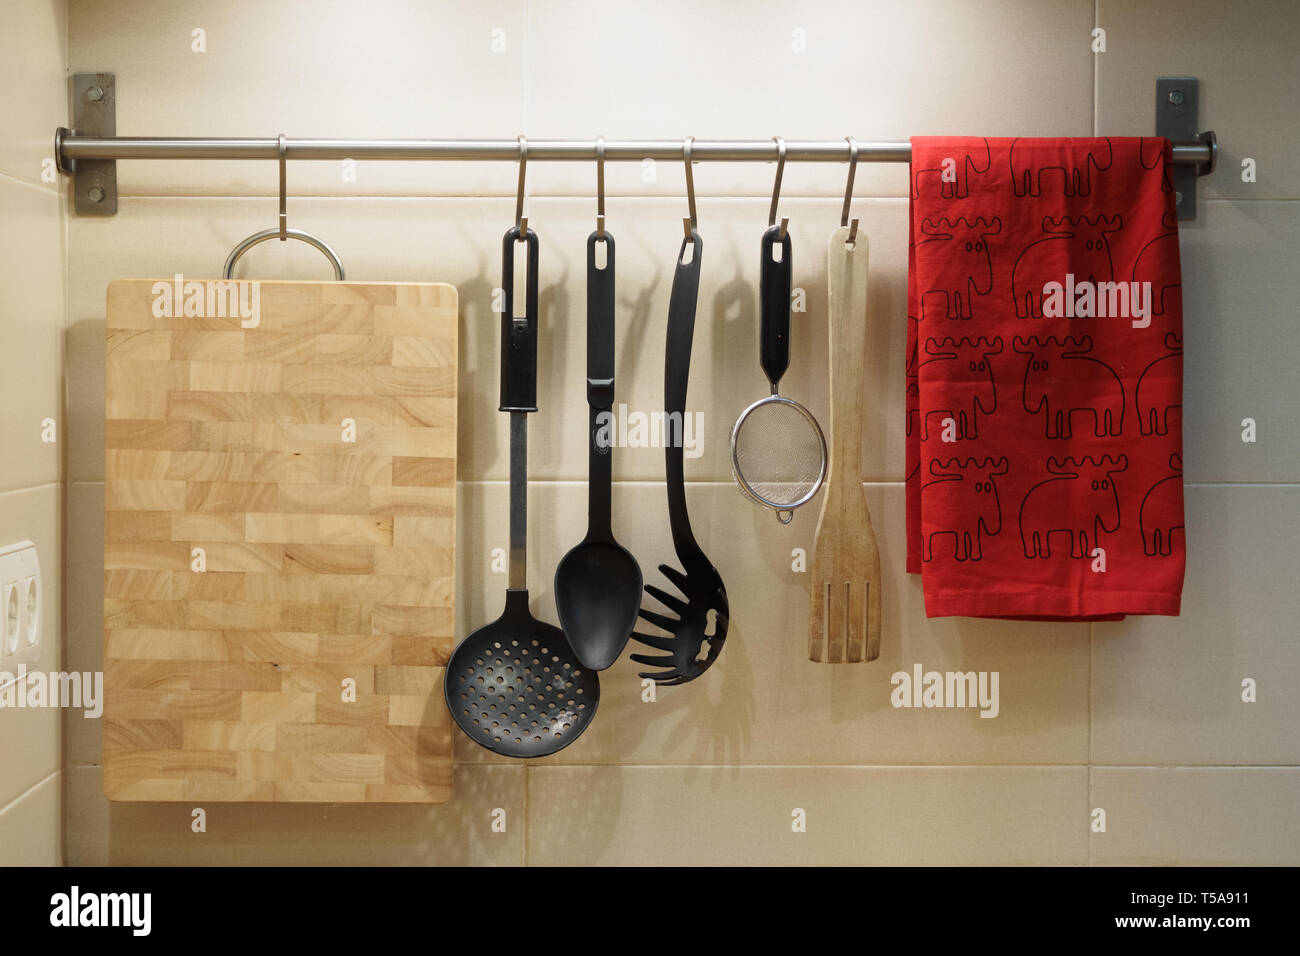 Kitchen Utensils Hanging On The Wall Stock Photo Alamy